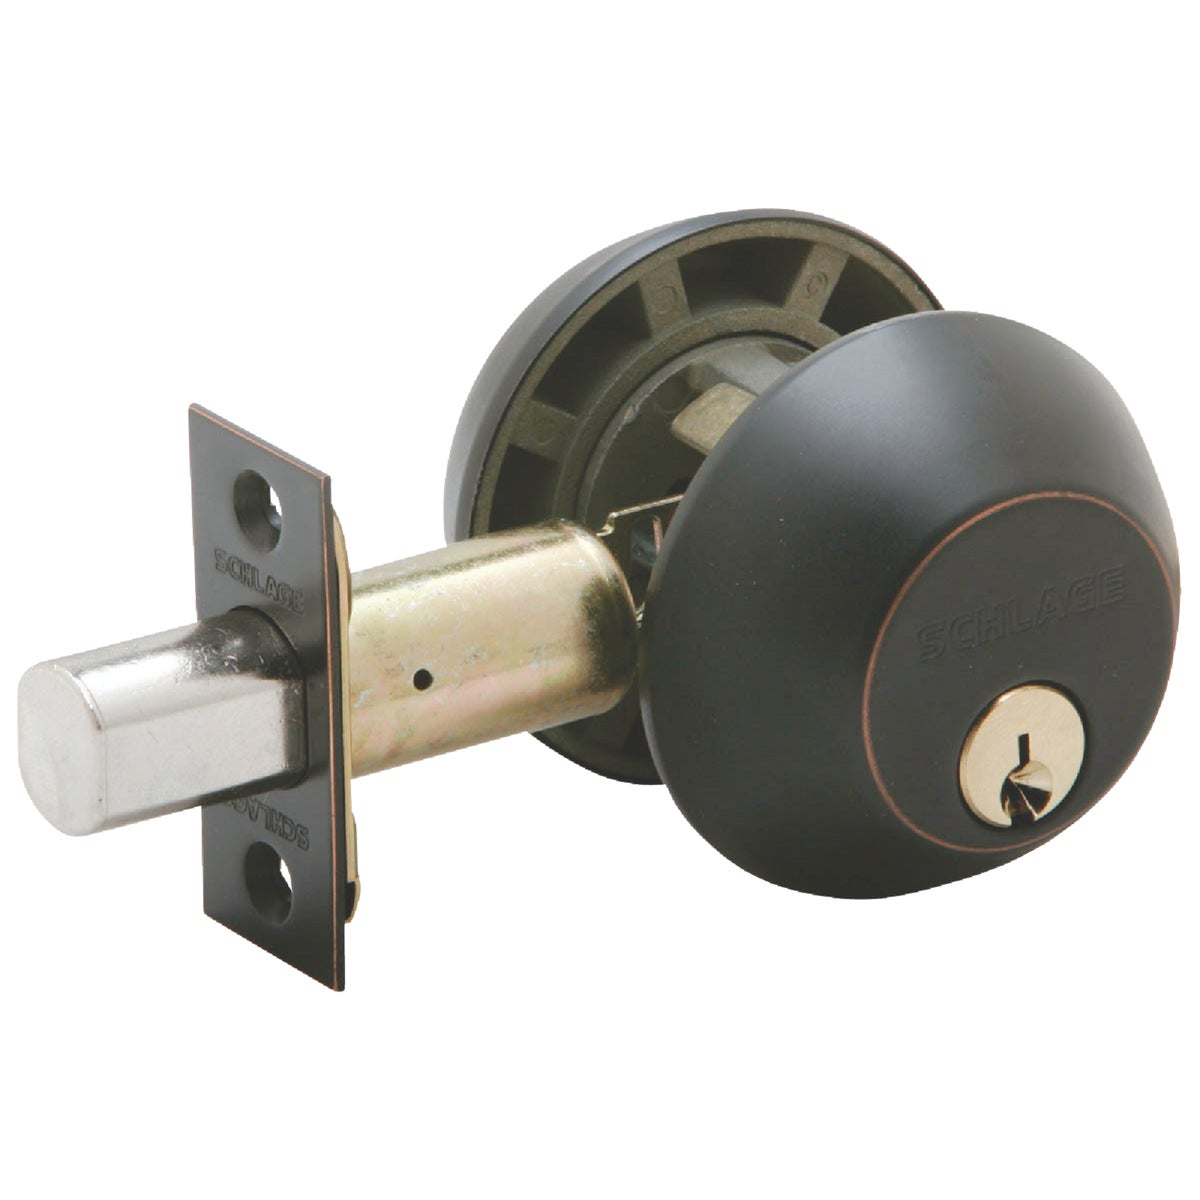 ABRZ 2CYL DEADBOLT - B62NV716 by Schlage Lock Co